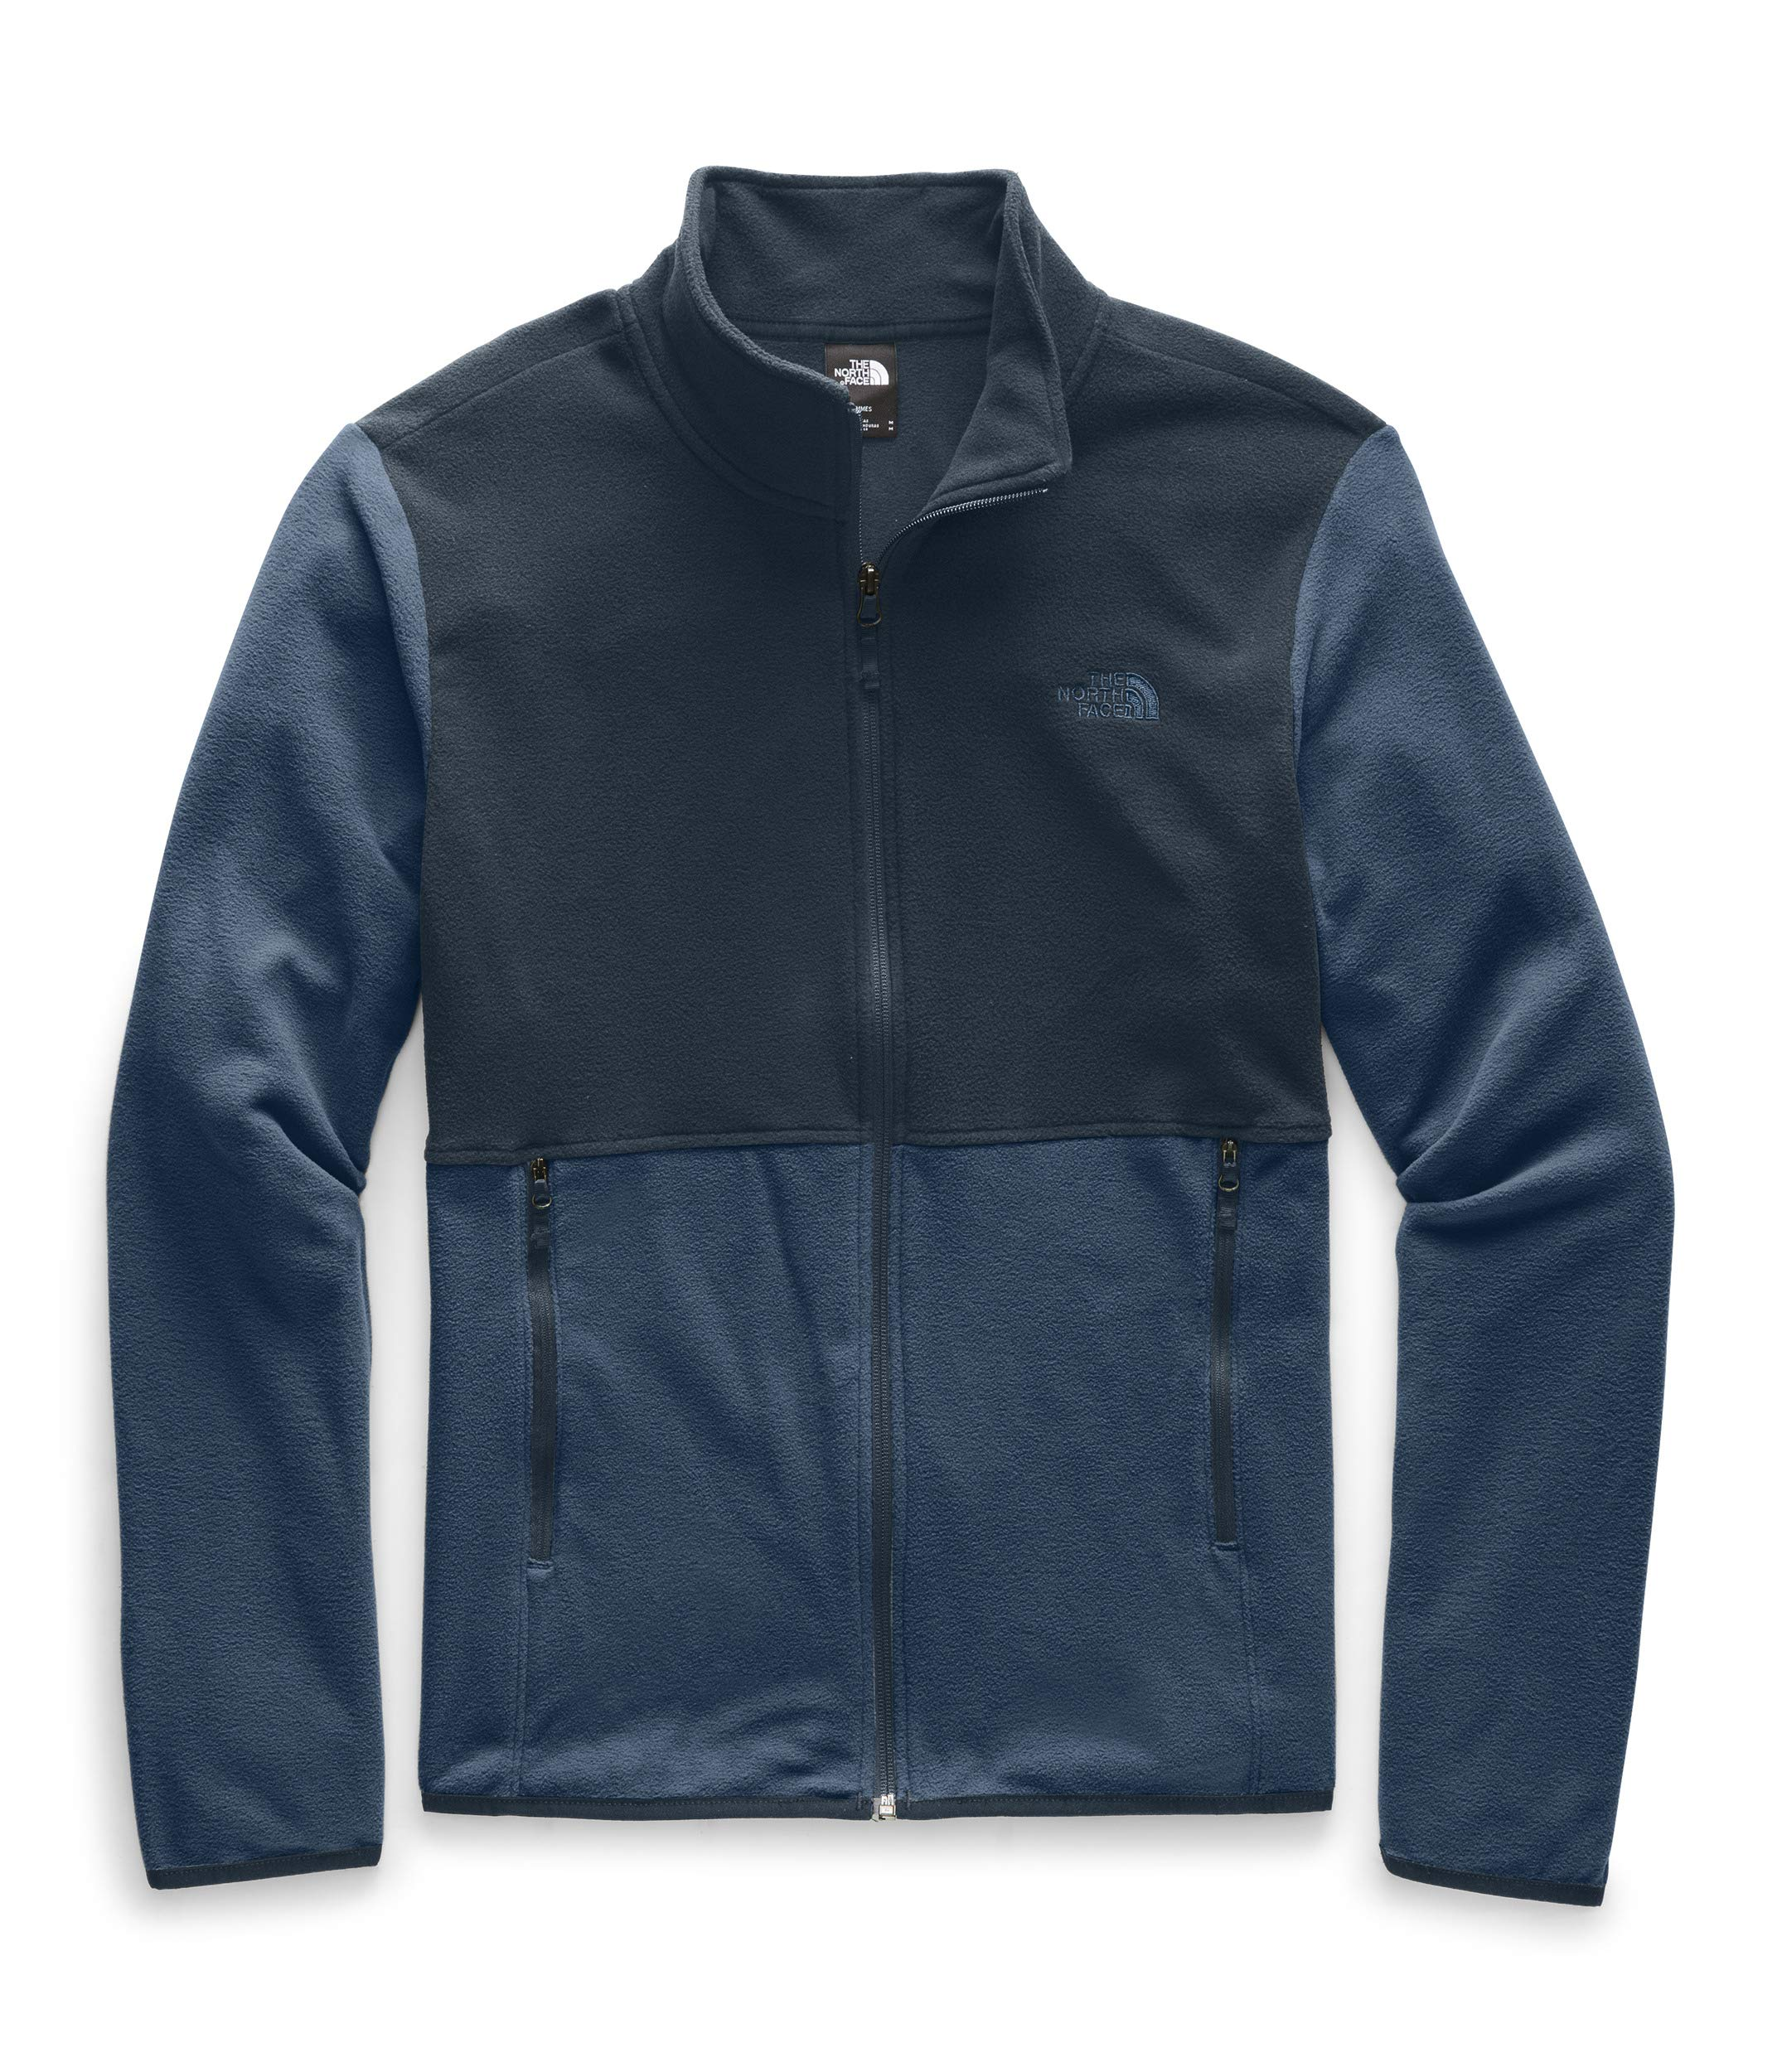 The North Face Men's TKA Glacier Full Zip Jacket by The North Face